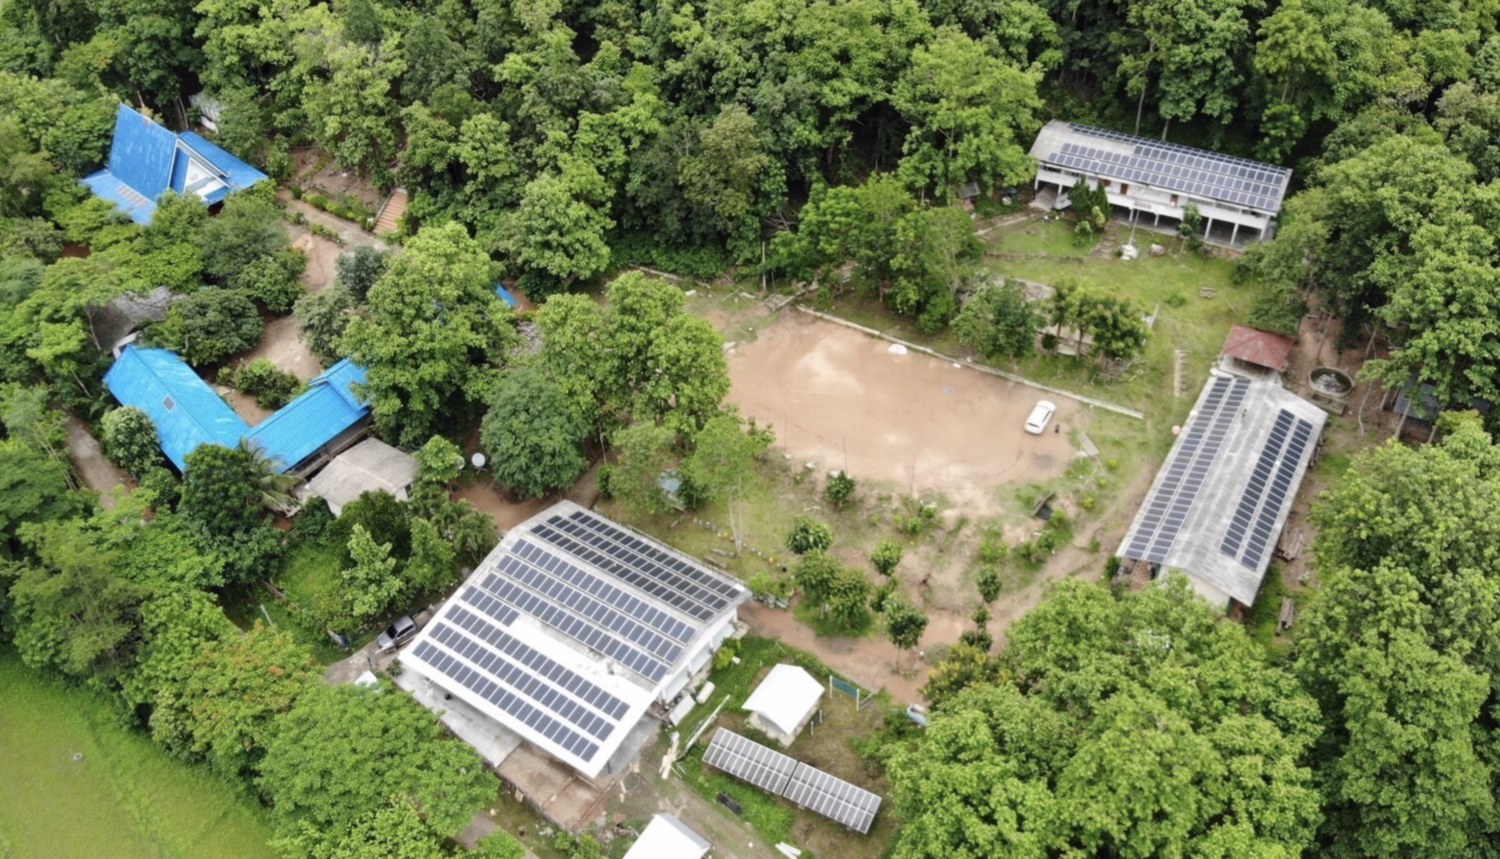 Aerial view of the Ban Pha Dan solar installation